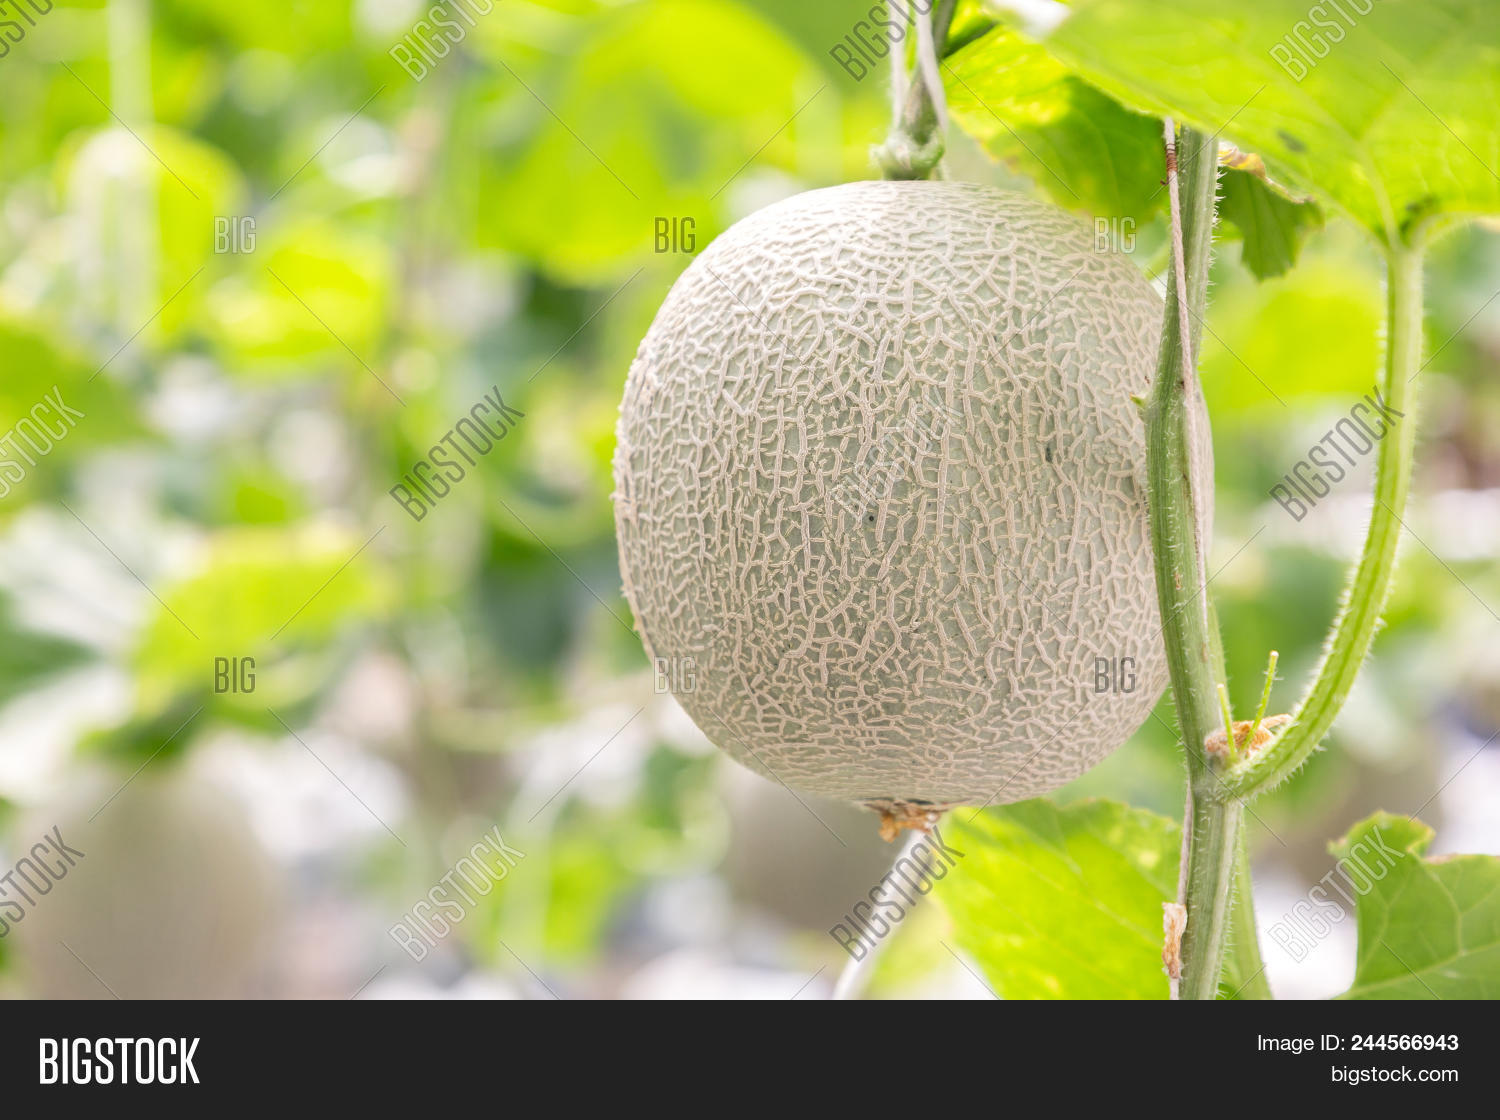 Green Melon Cantaloupe Image Photo Free Trial Bigstock Последние твиты от green cantelope (@leasmal7). green melon cantaloupe image photo